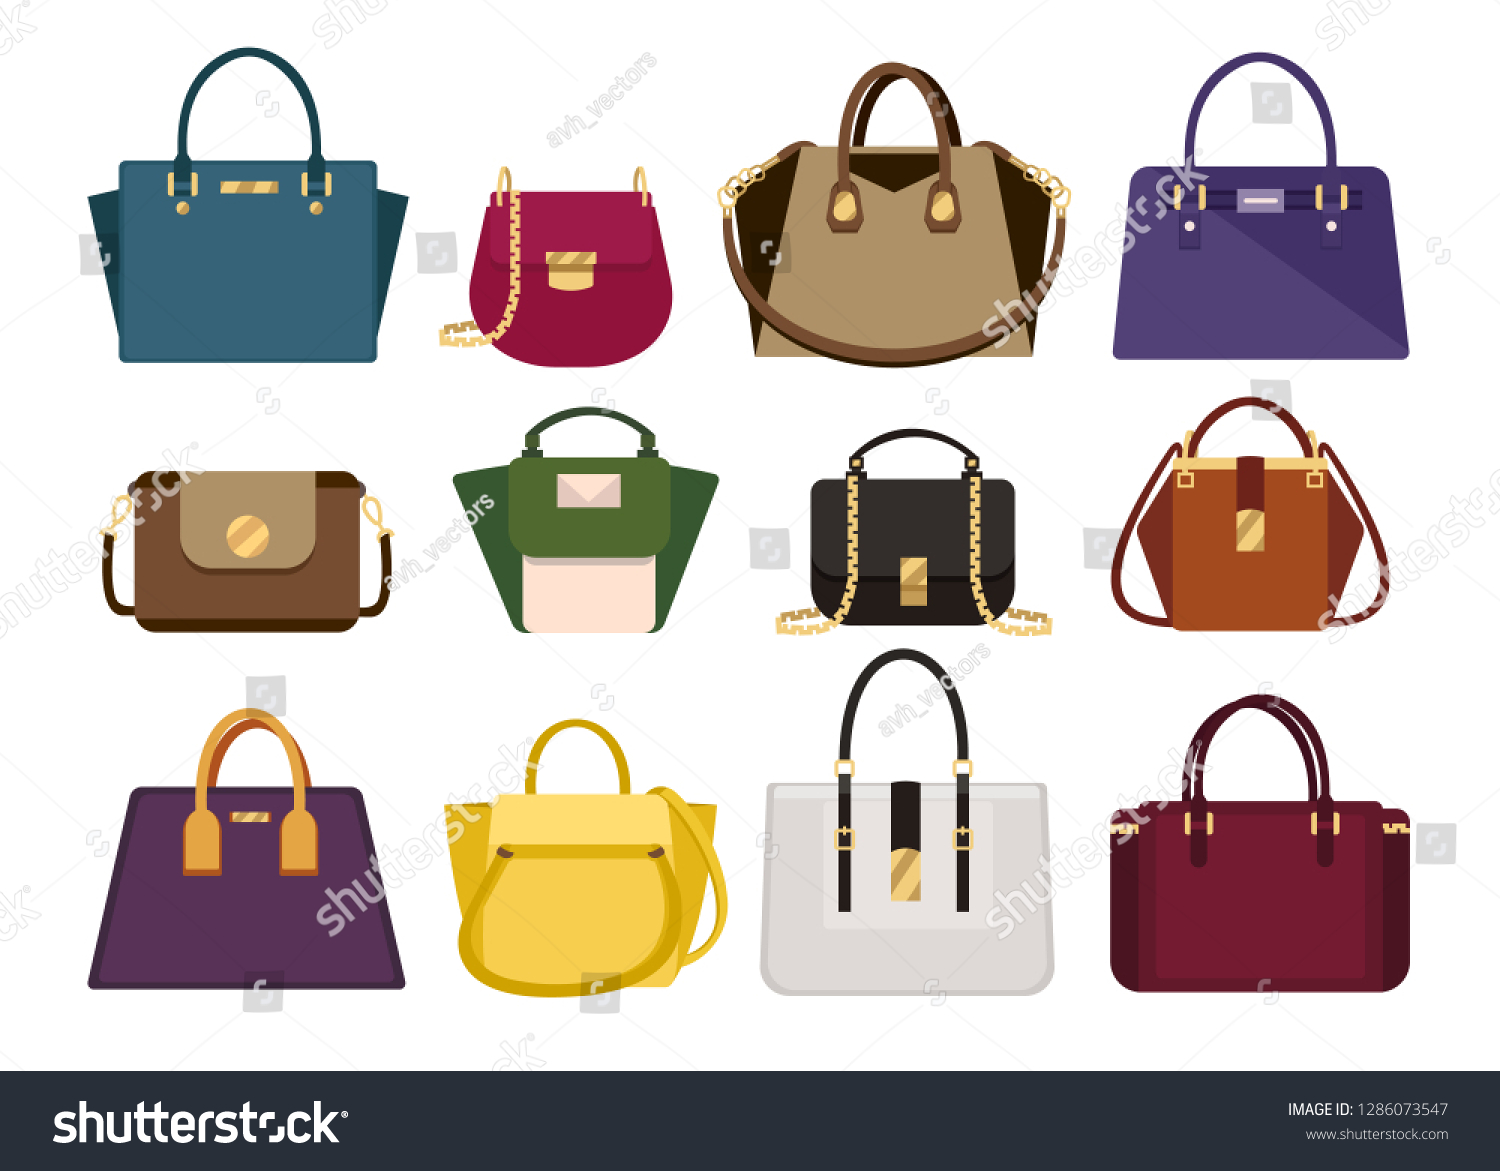 0e87b7e74a Woman color bags Designer Ladies Handbag collection of fashionable female  accessories of different types isolated icons